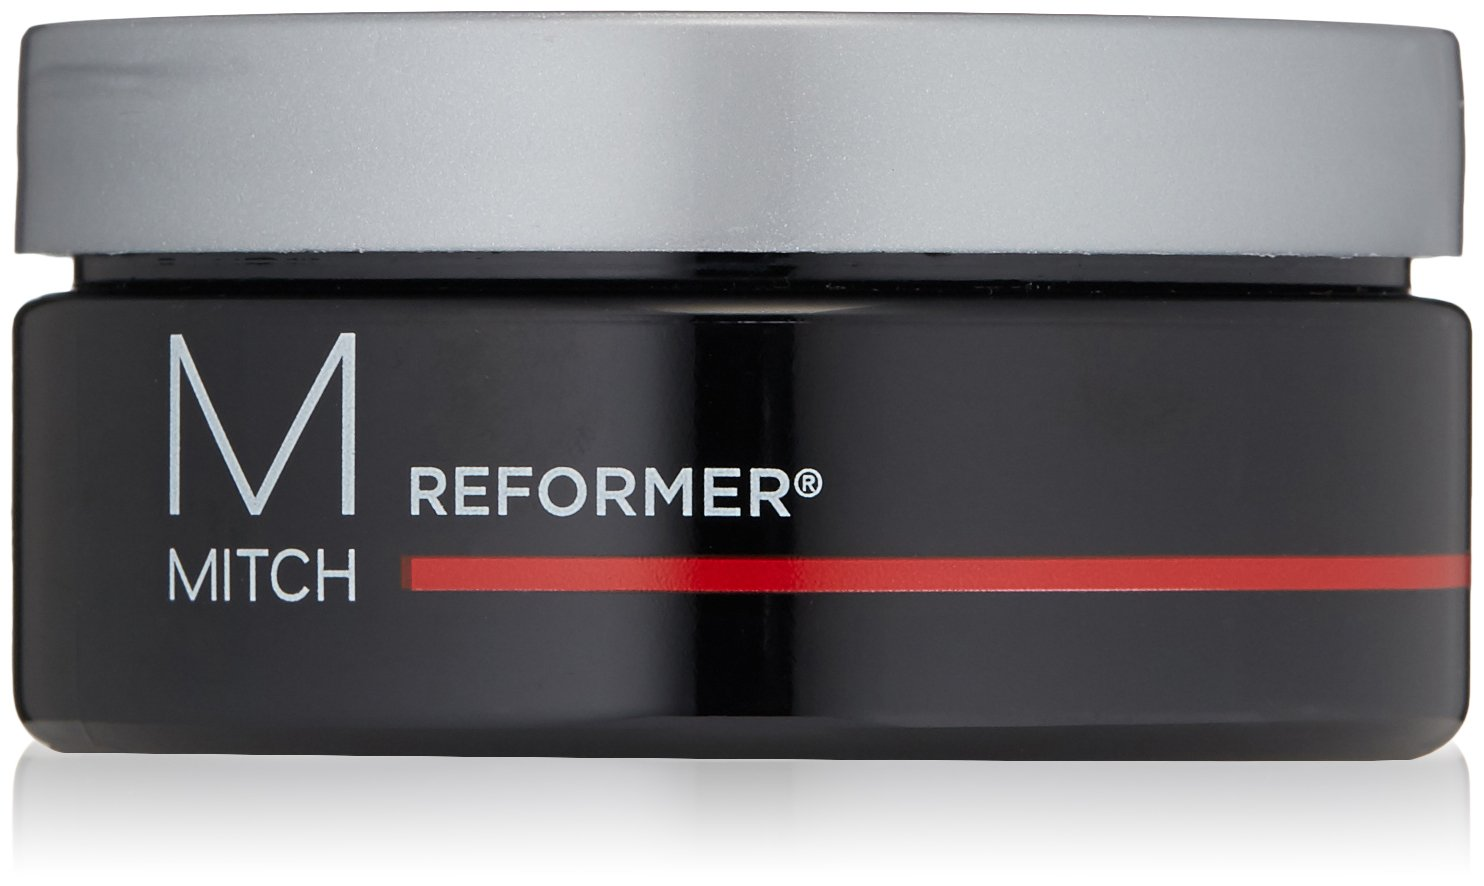 Mitch Reformer Strong Hold/Matte Finish Texturizer by Paul Mitchell for Men - 3 oz Texturizer 218109